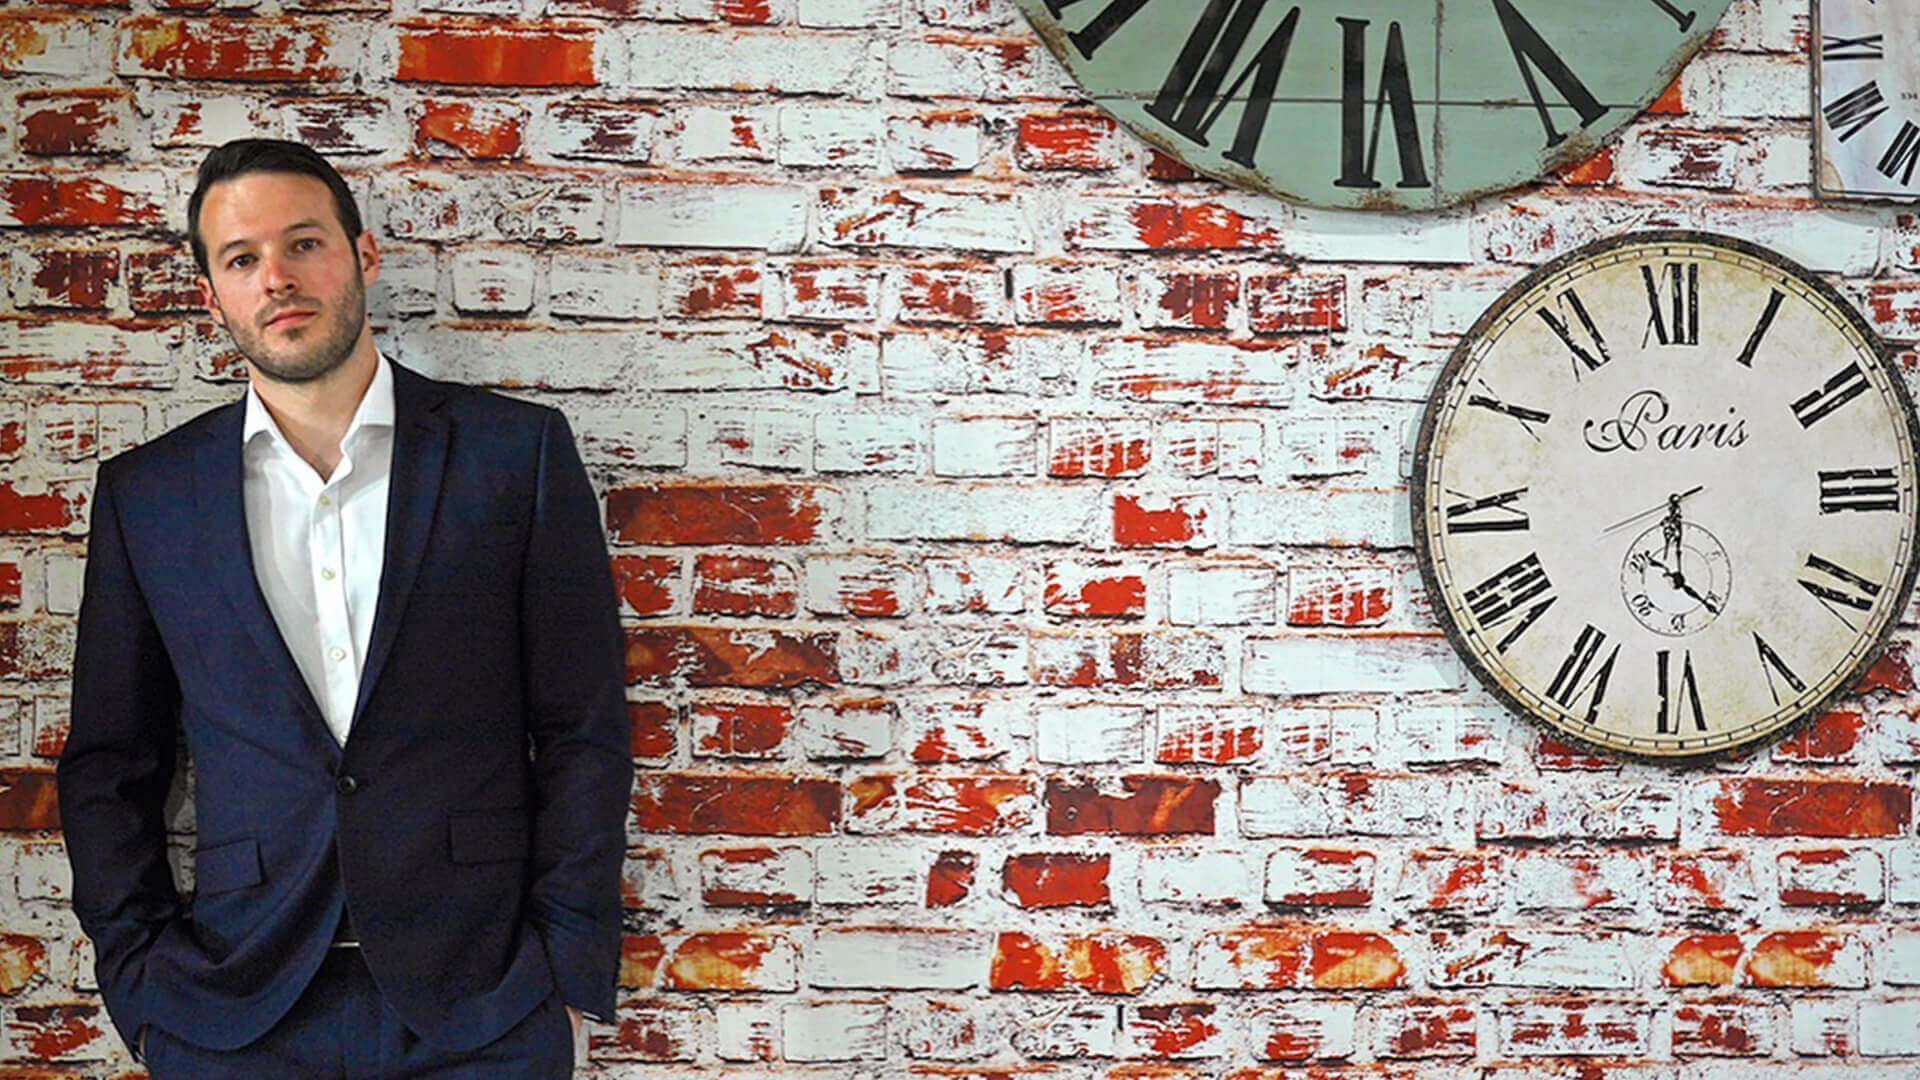 Aaron Calvert leaning against a brick wall with clocks ready for his edinburgh fringe magic show